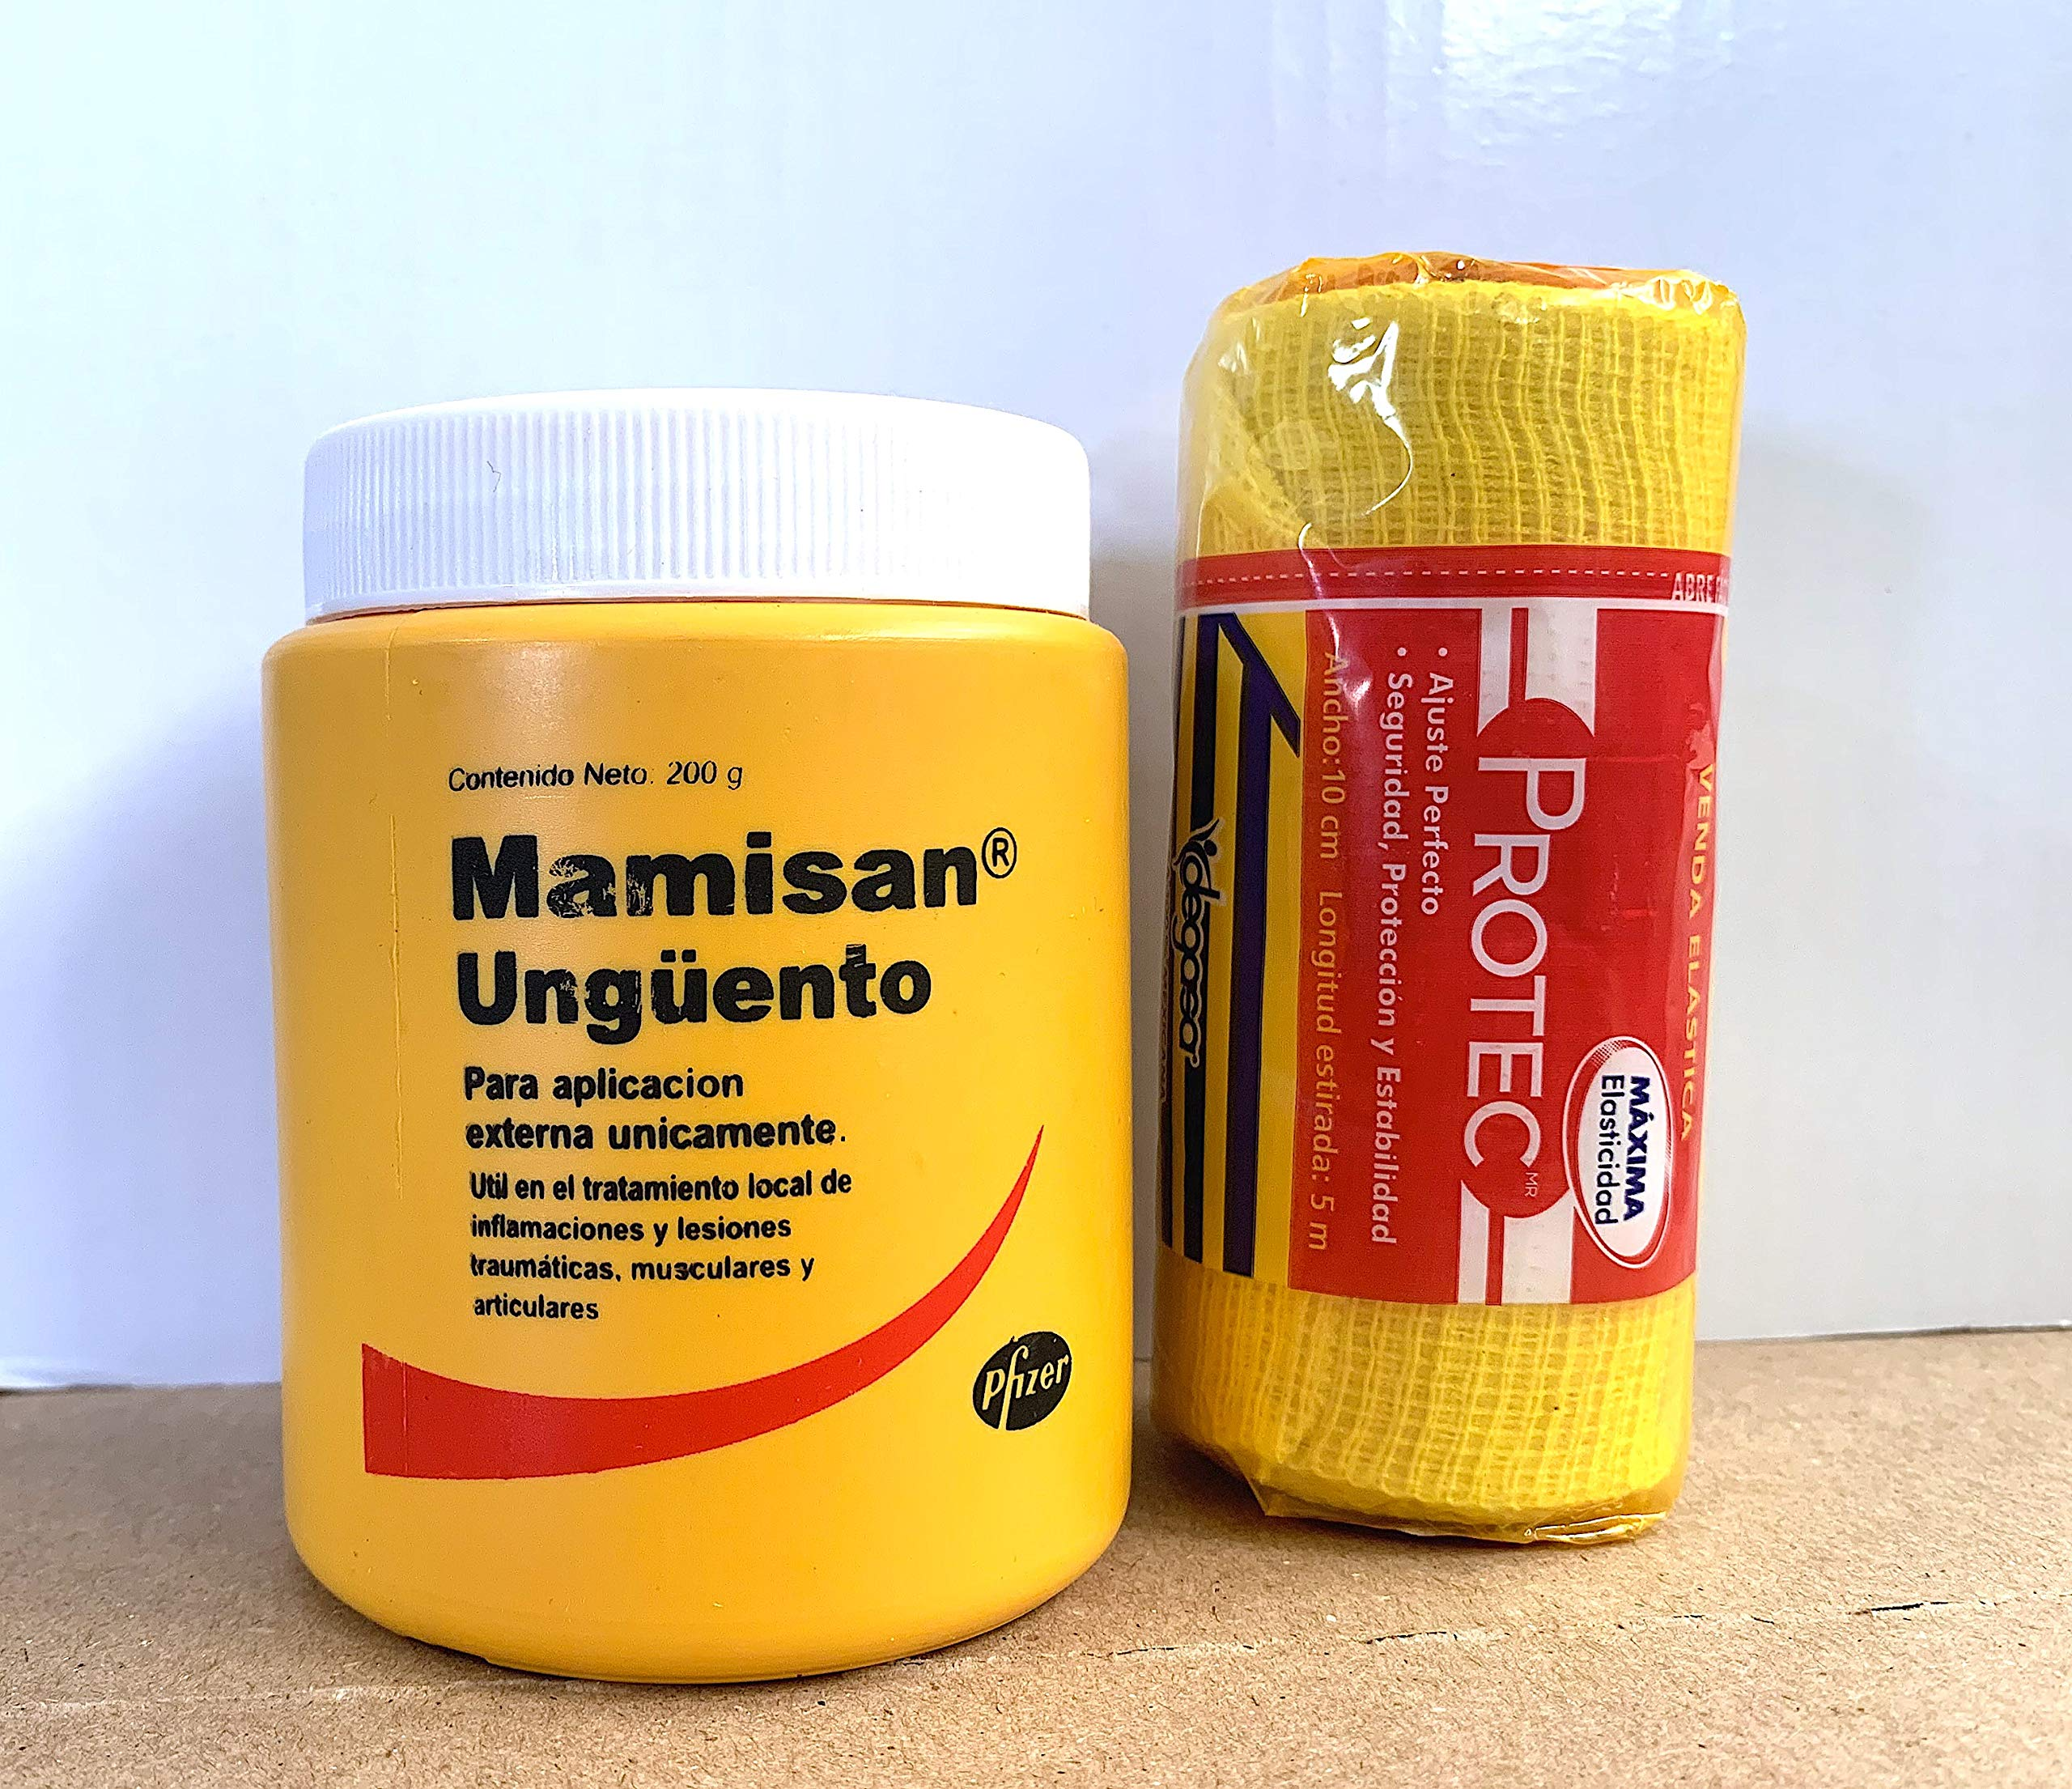 Mamisan Ungüento (200g/7.05oz) Each Orginal by Pfizer : Hits, Wounds, inflamation, Arthritis, Includes Gift: Elastic Bandage protec